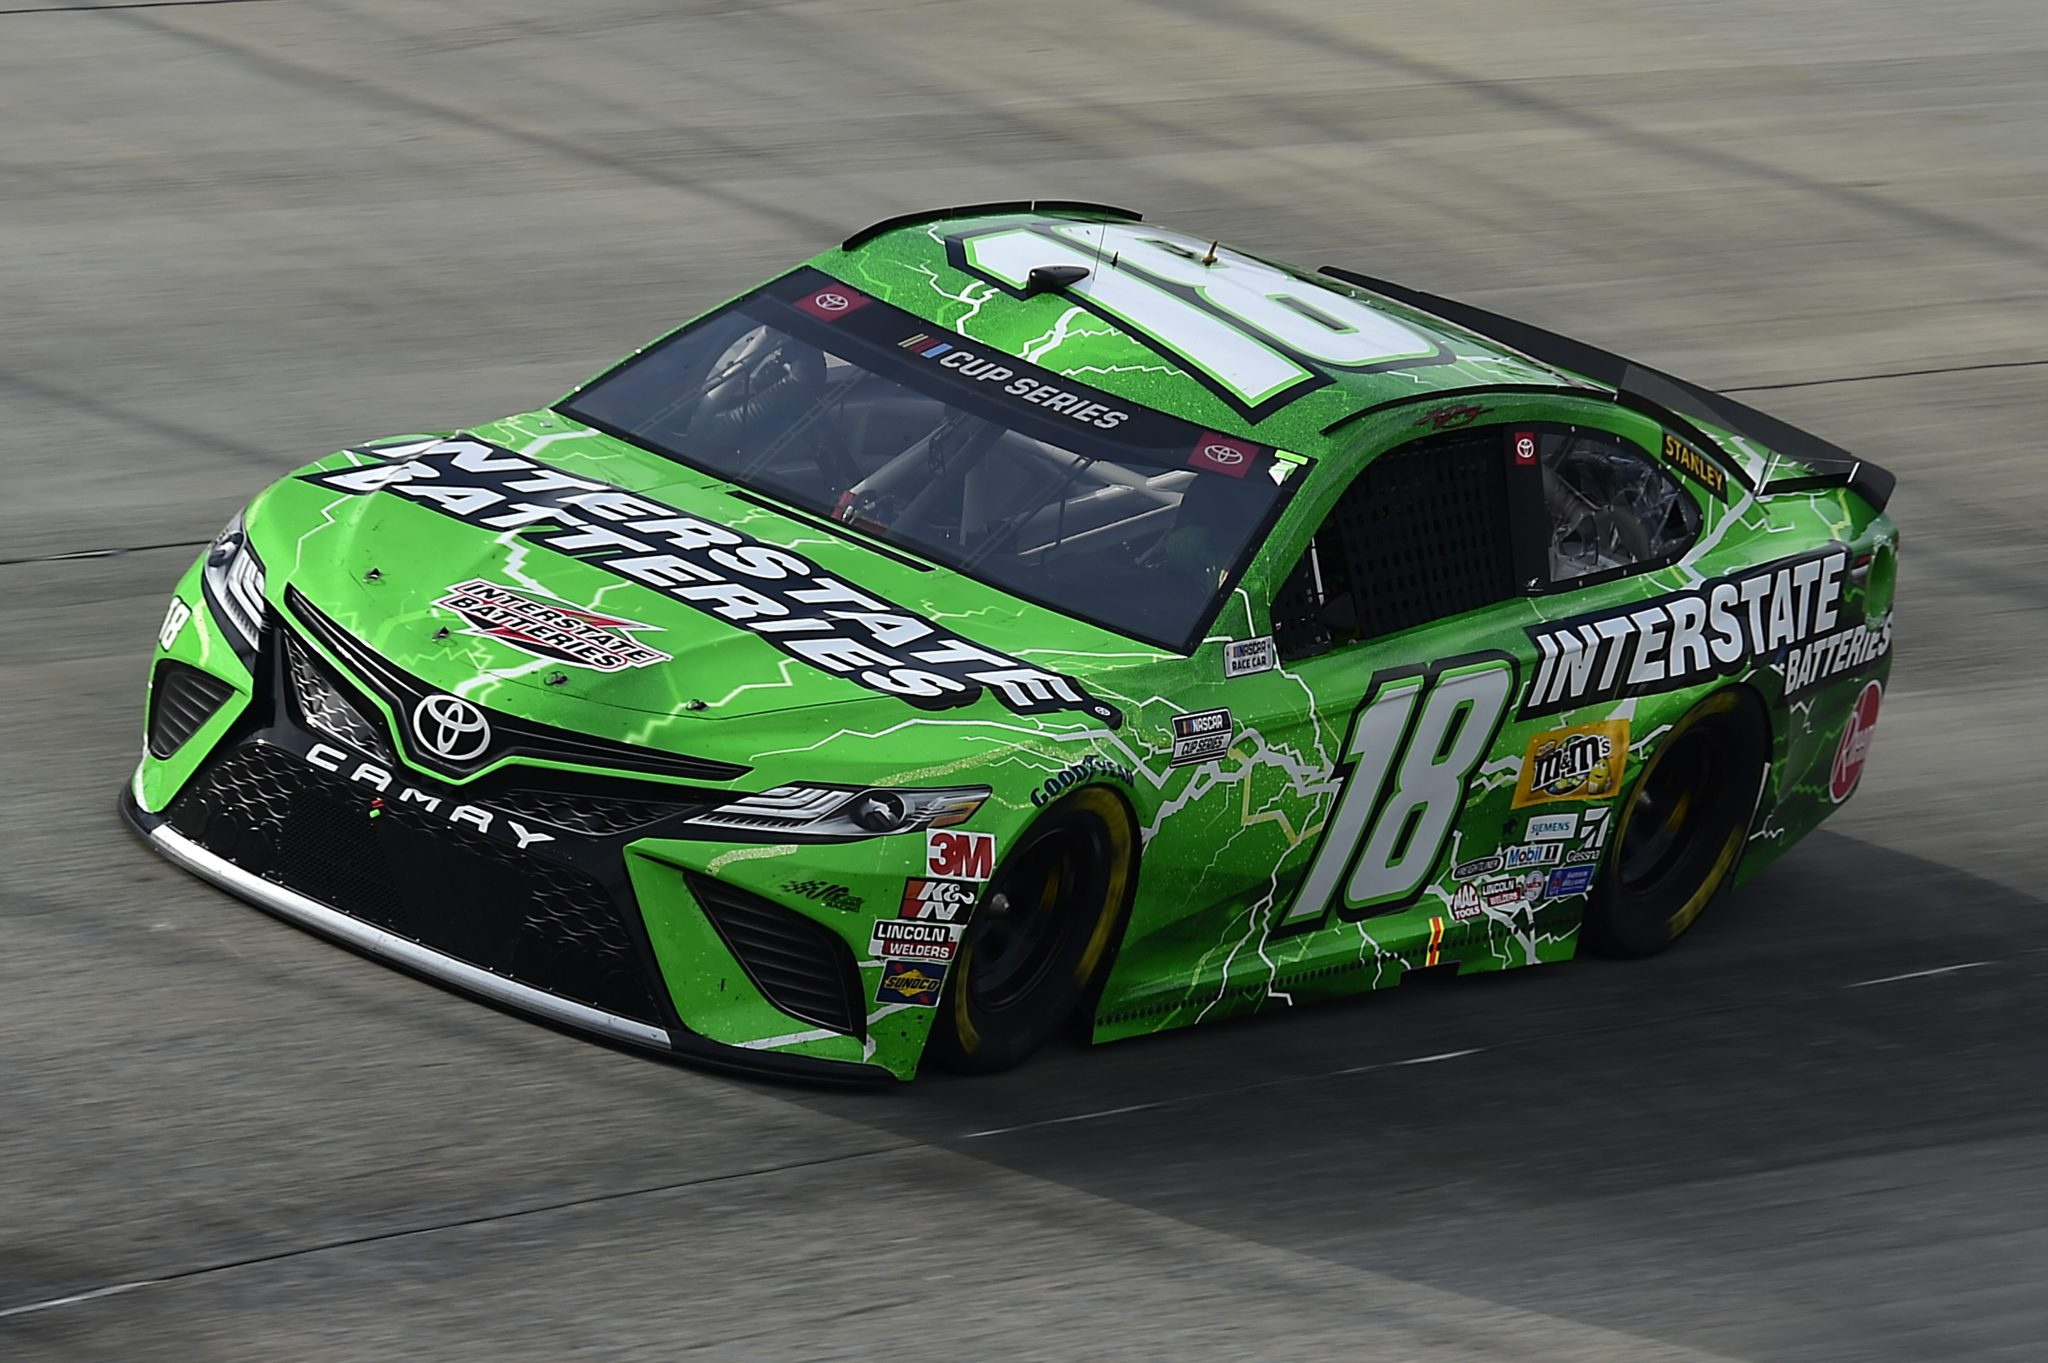 DOVER, DELAWARE - AUGUST 22: Kyle Busch, driver of the #18 Interstate Batteries Toyota, drives during the NASCAR Cup Series Drydene 311 at Dover International Speedway on August 22, 2020 in Dover, Delaware. (Photo by Jared C. Tilton/Getty Images) | Getty Images